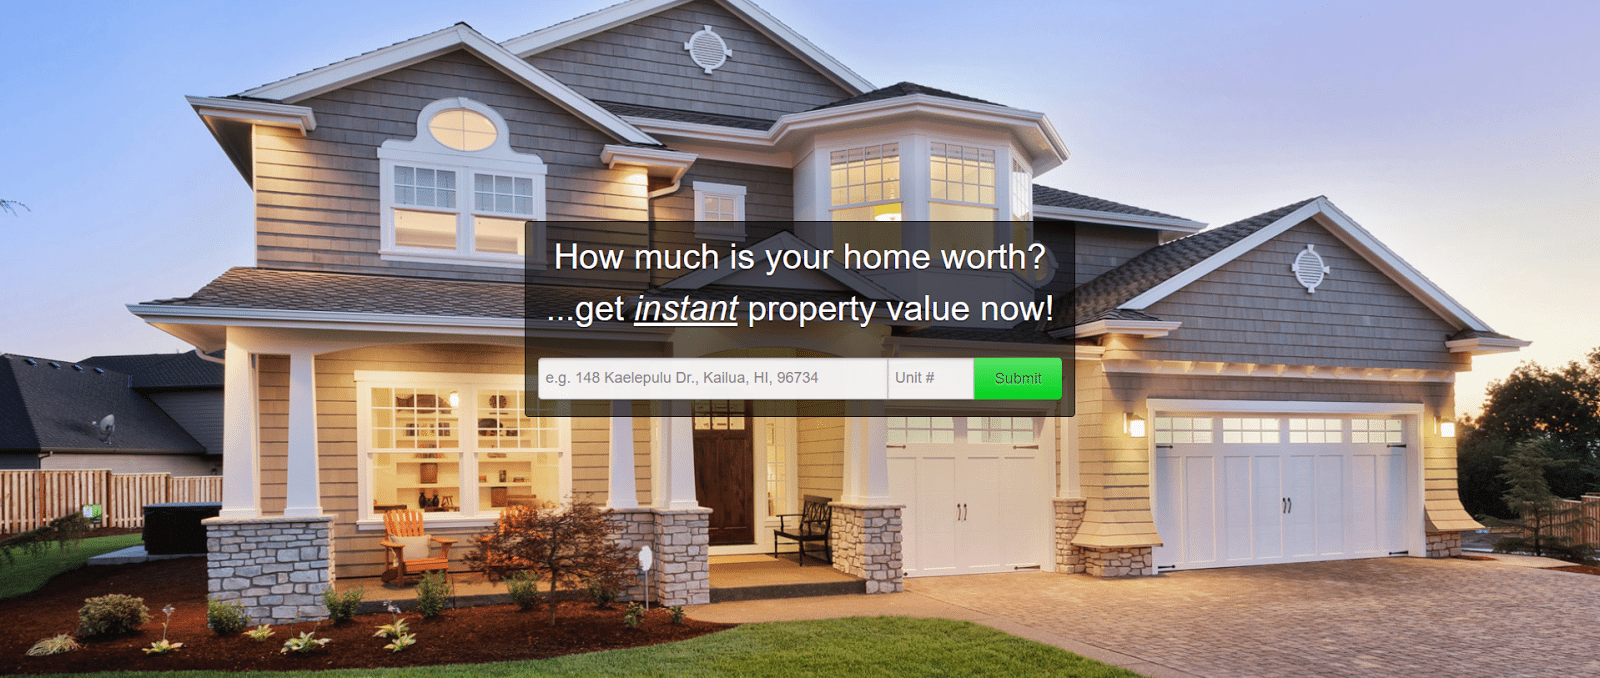 An online homepage for property value